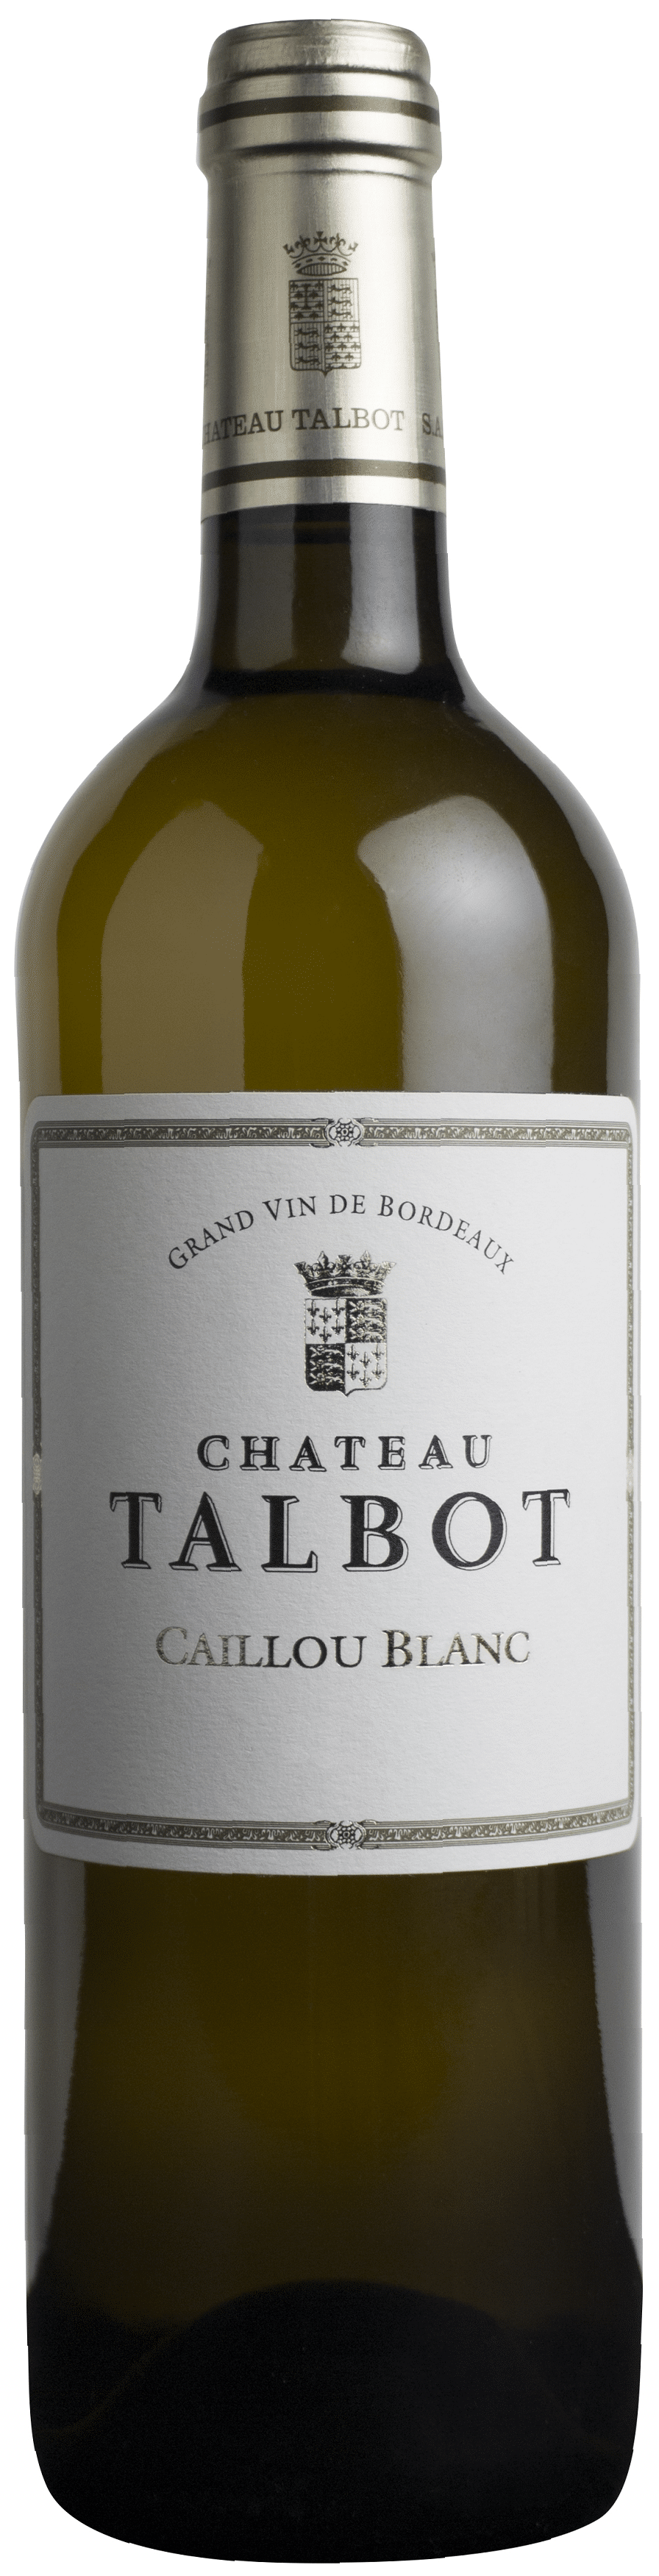 Chateau Talbot, Caillou Blanc, 2002